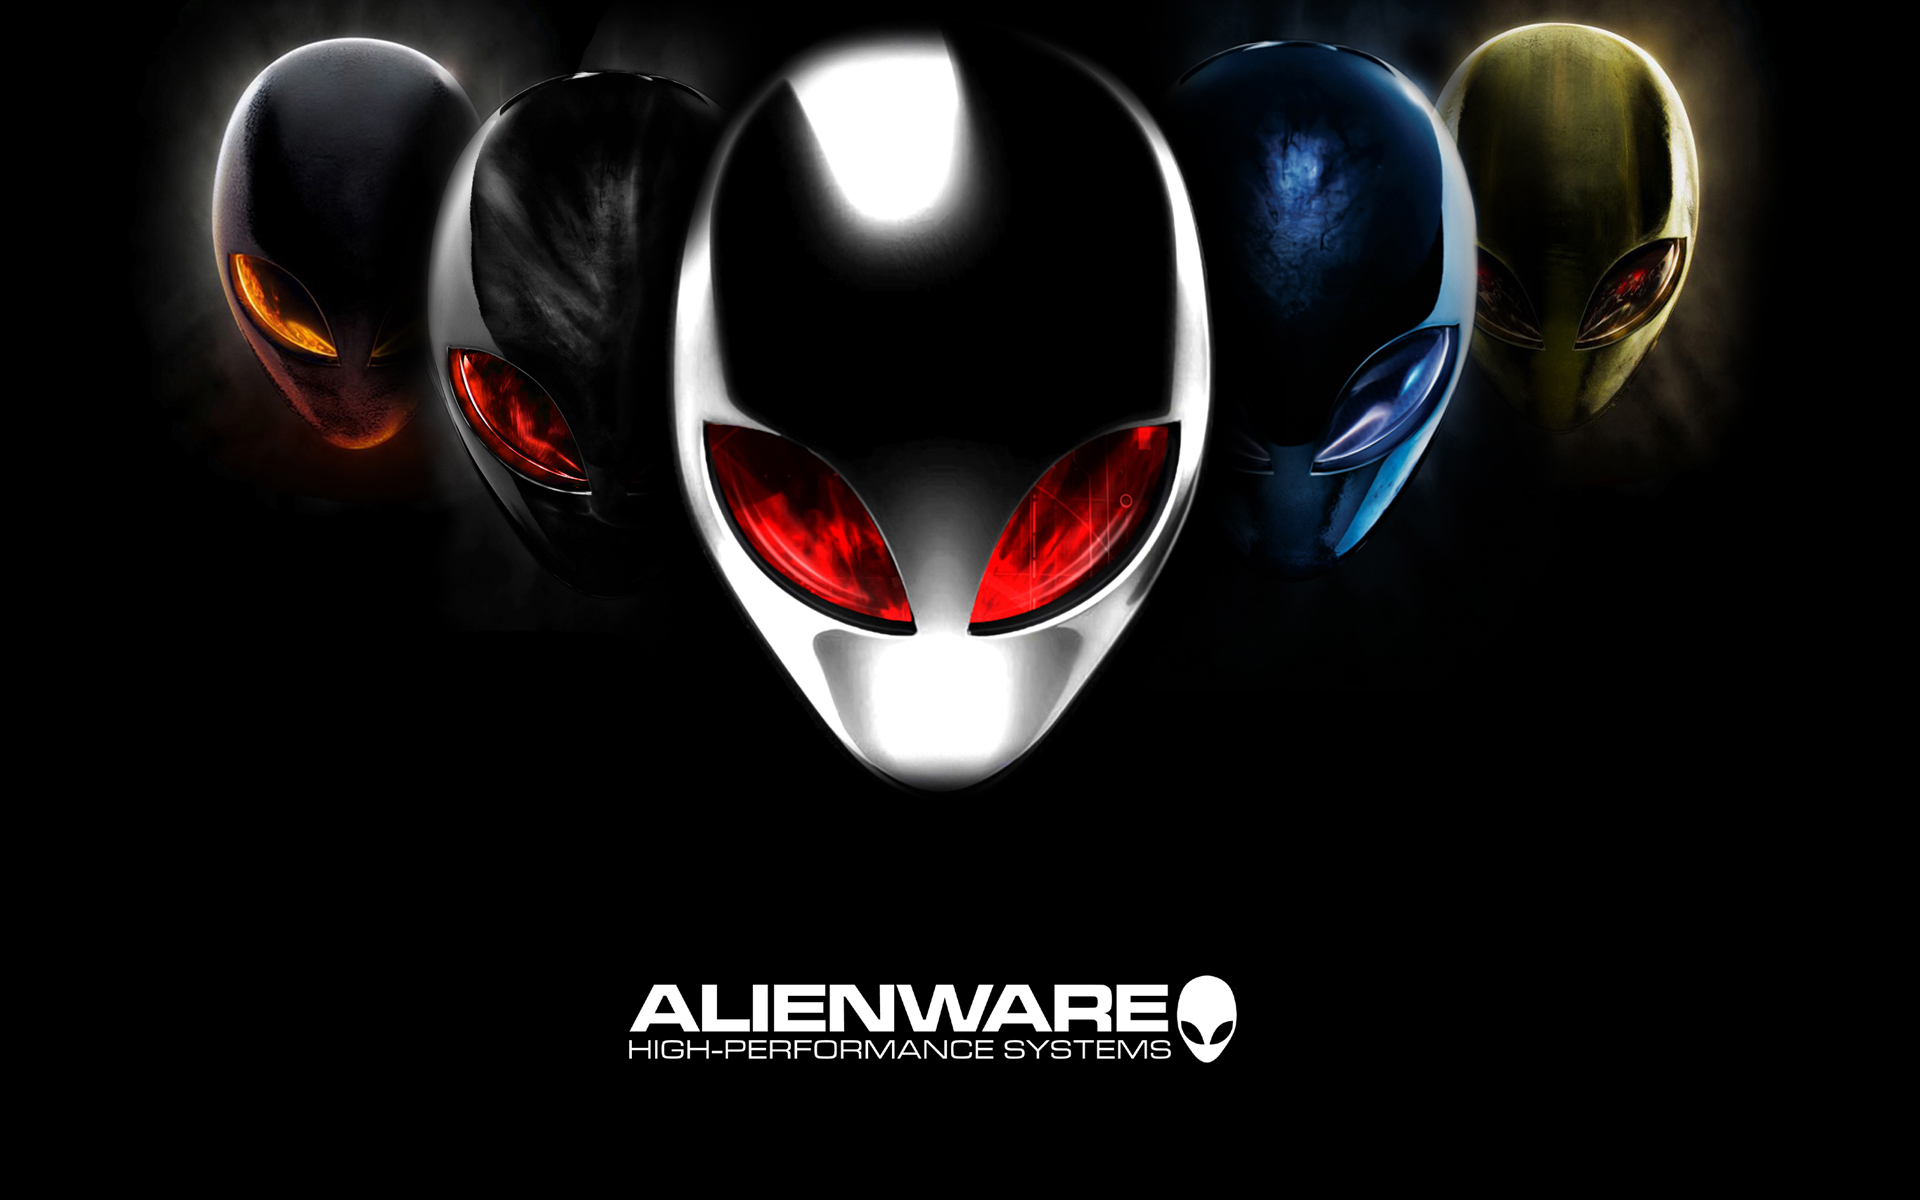 Alienware Wallpaper